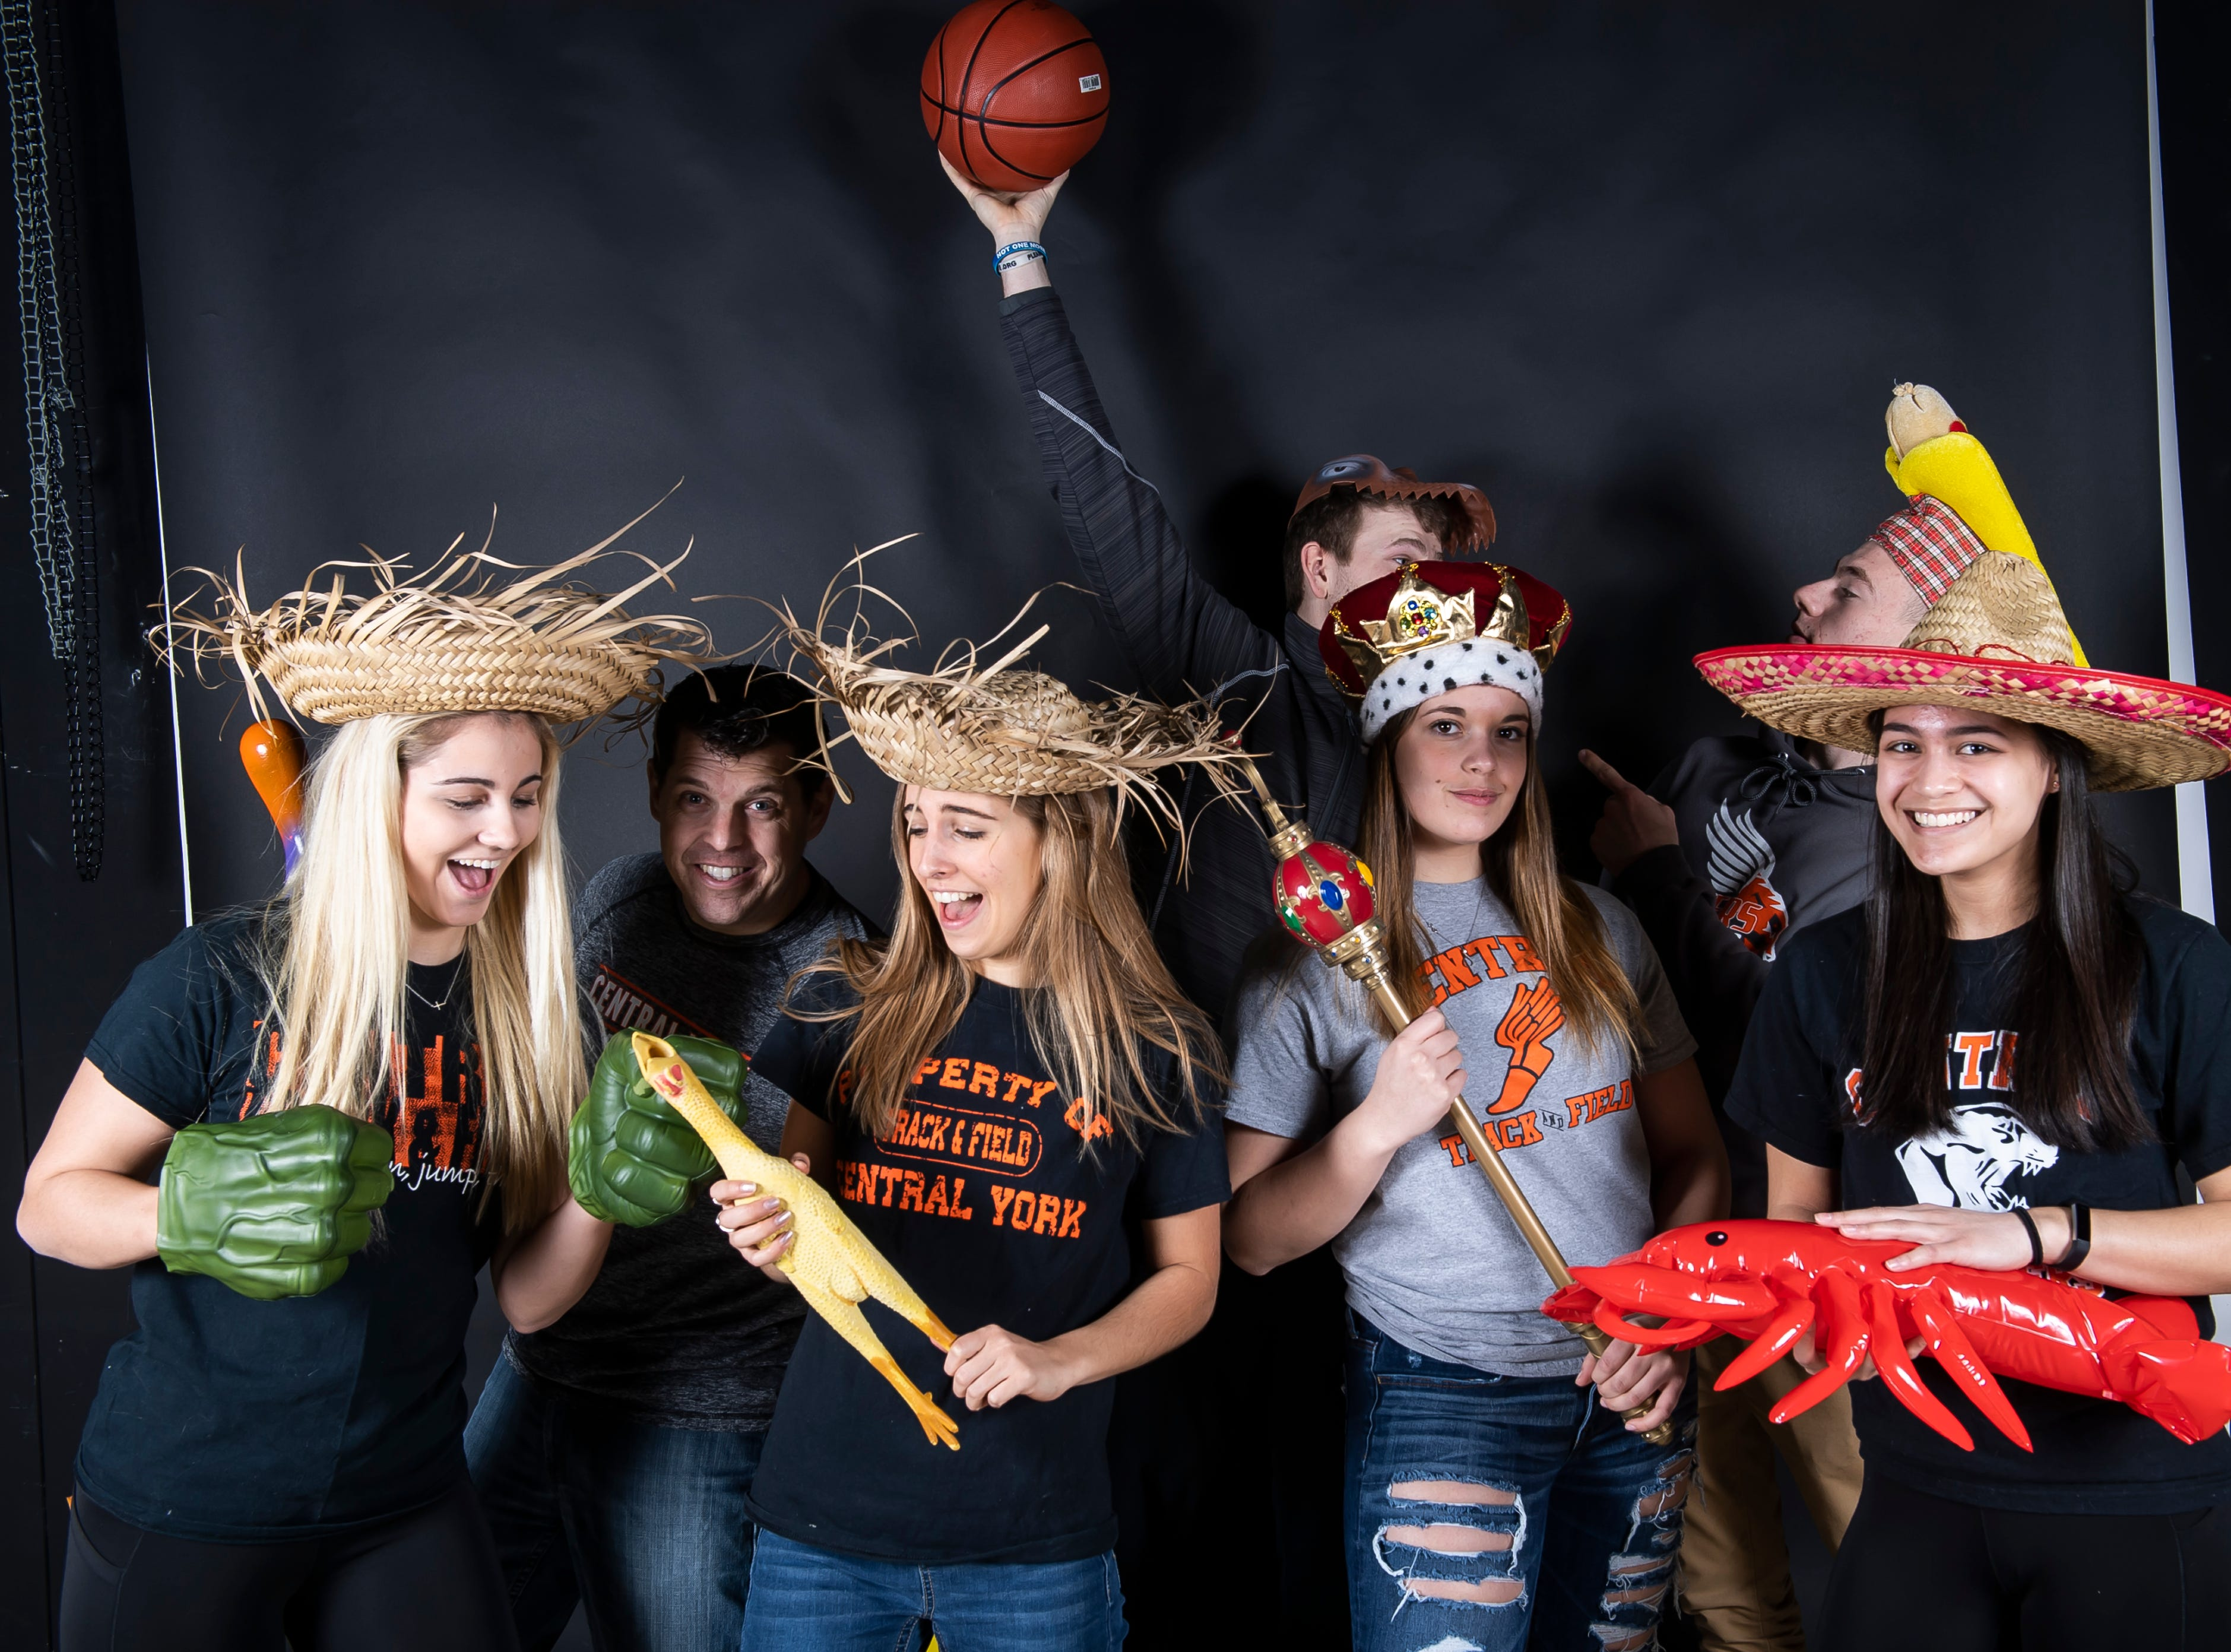 The Central York track and field team strike a pose in the GameTimePA photo booth during spring sports media day in York Sunday, March 10, 2019.